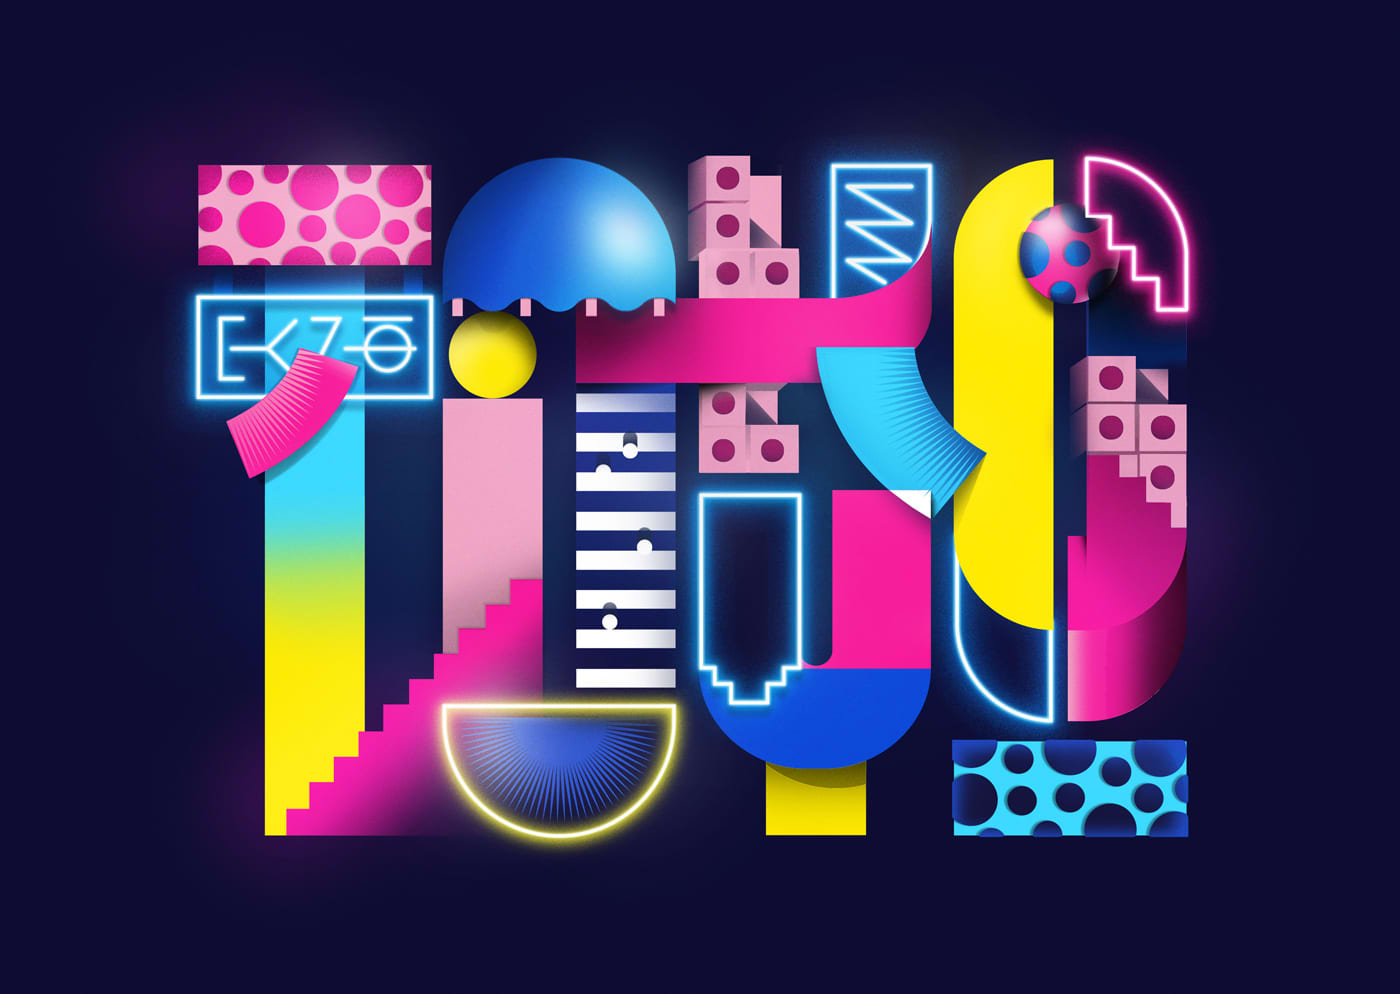 Tokyo Illustrated Lettering